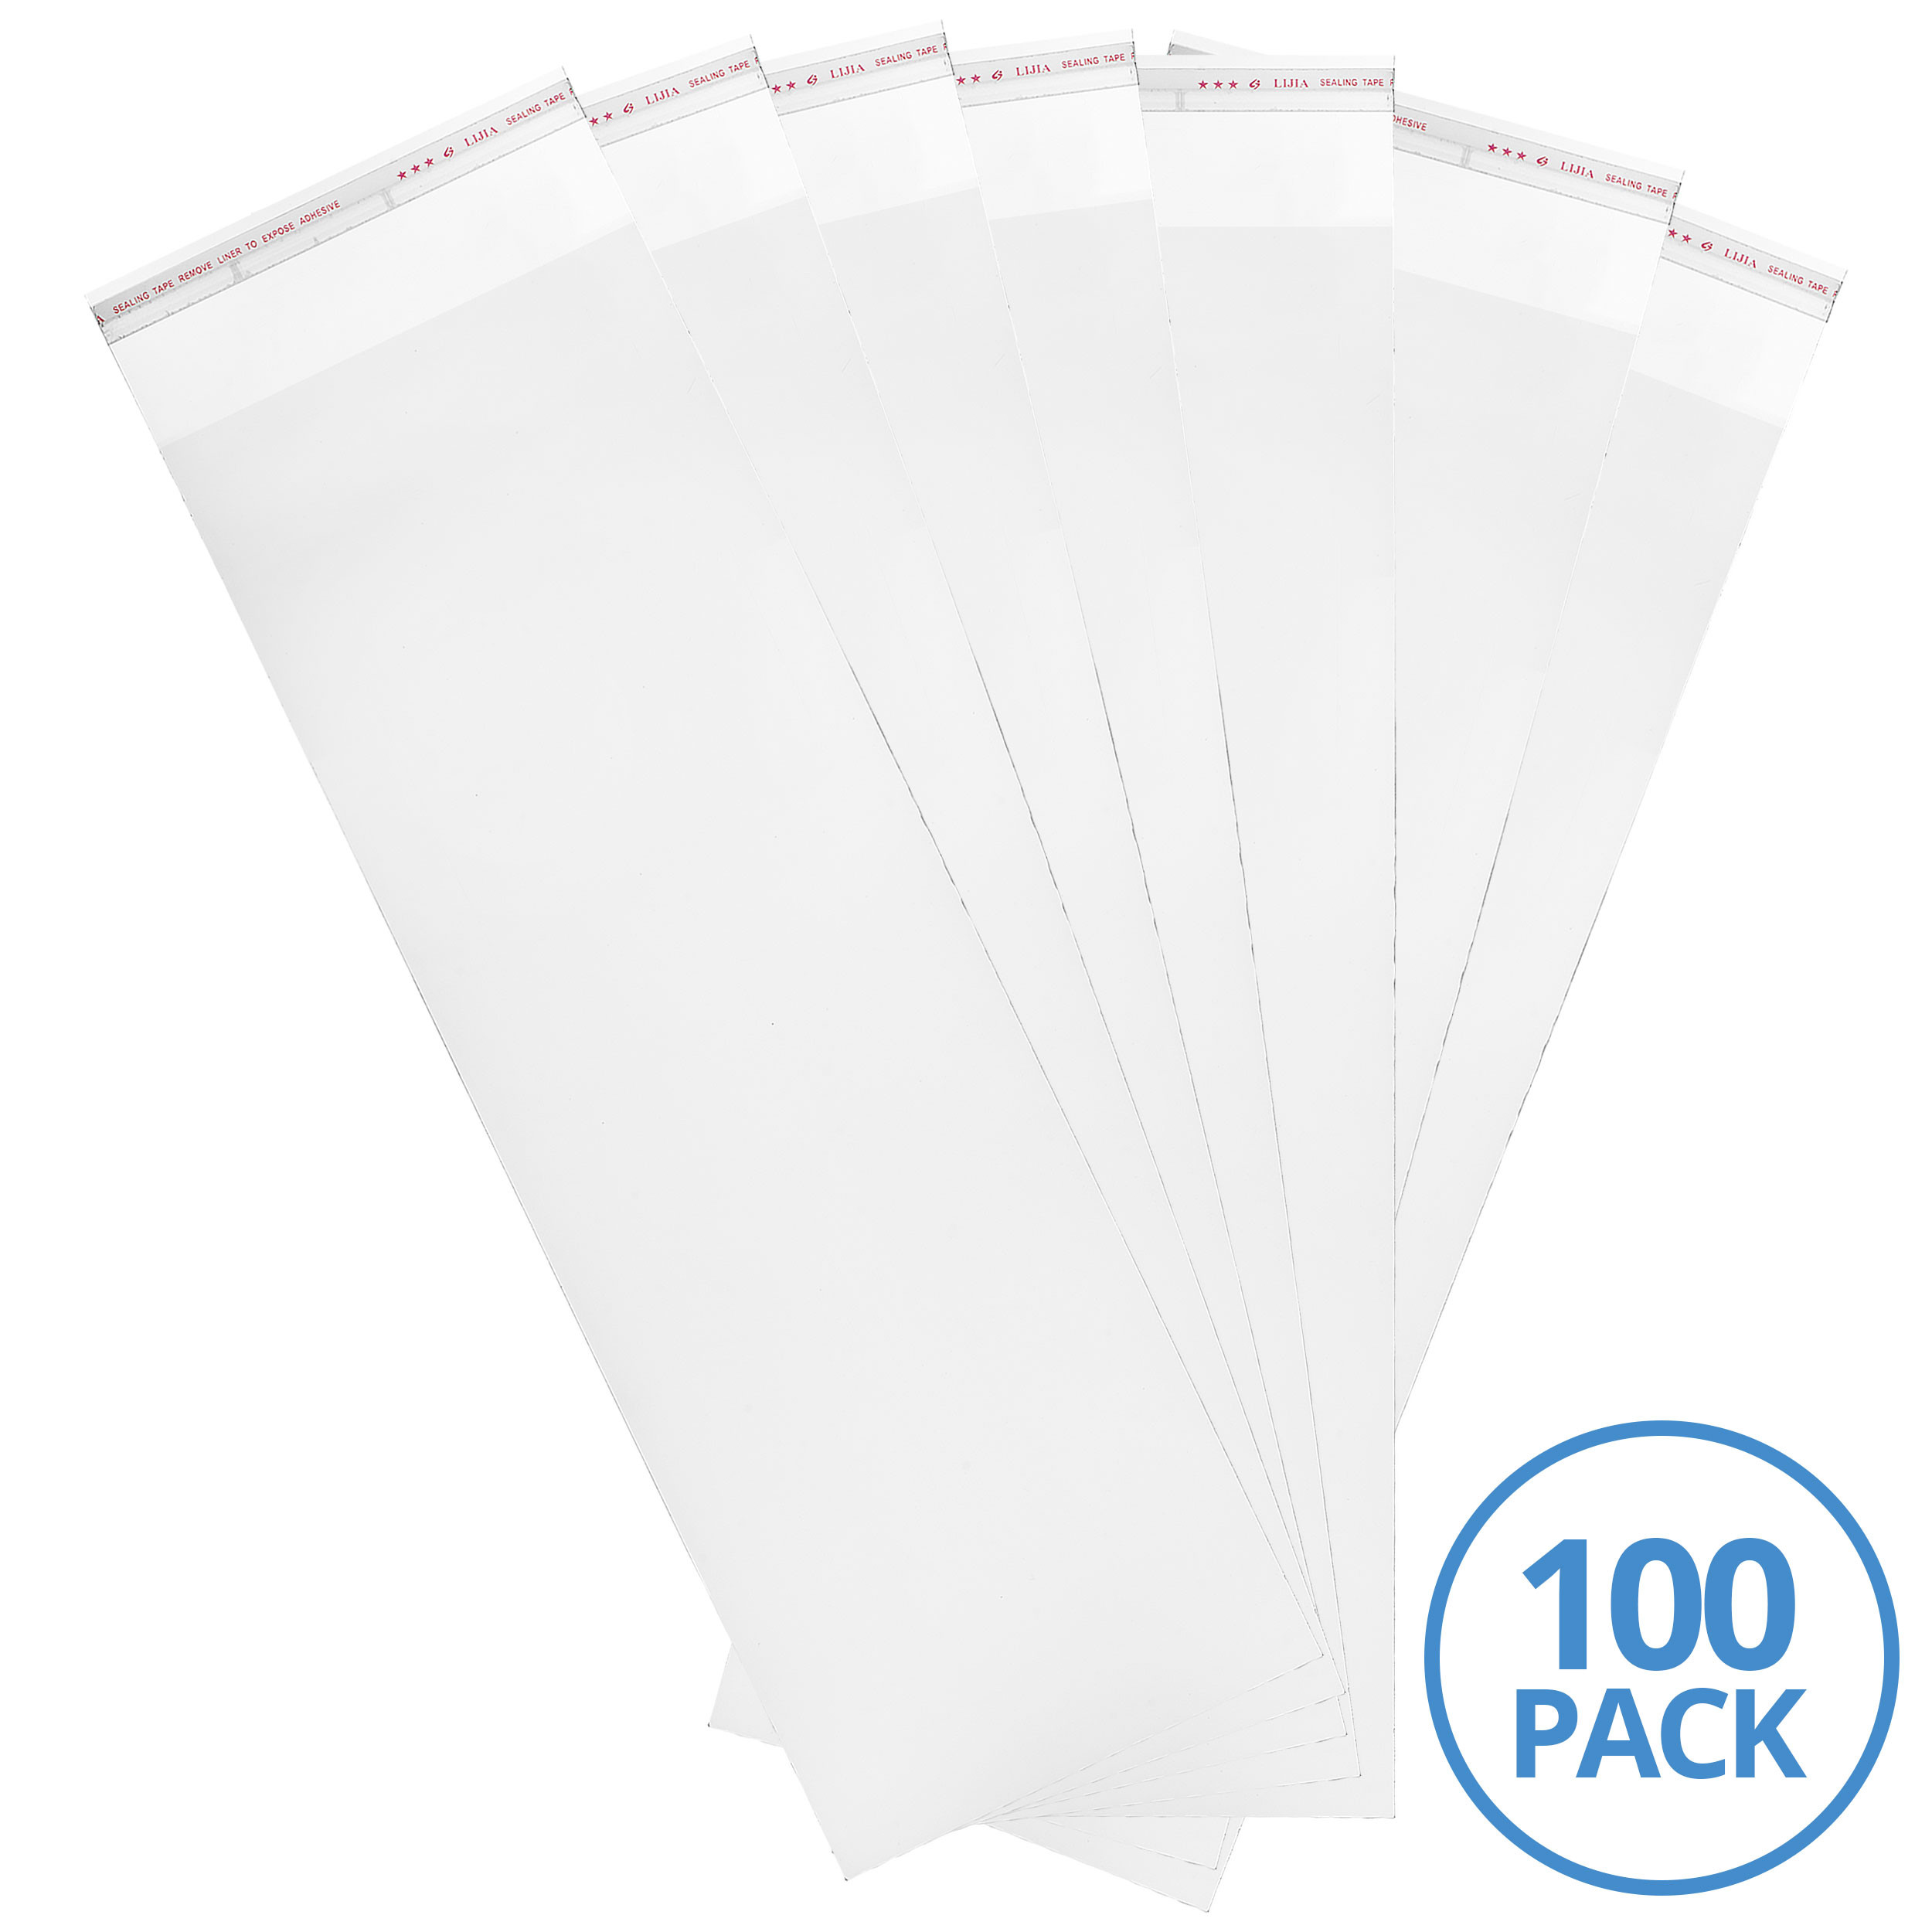 "Absorbent Industries 3 Mil Adhesive Top Clear Nylon Bag (100 Pack), 6"" x 18"", Clear"